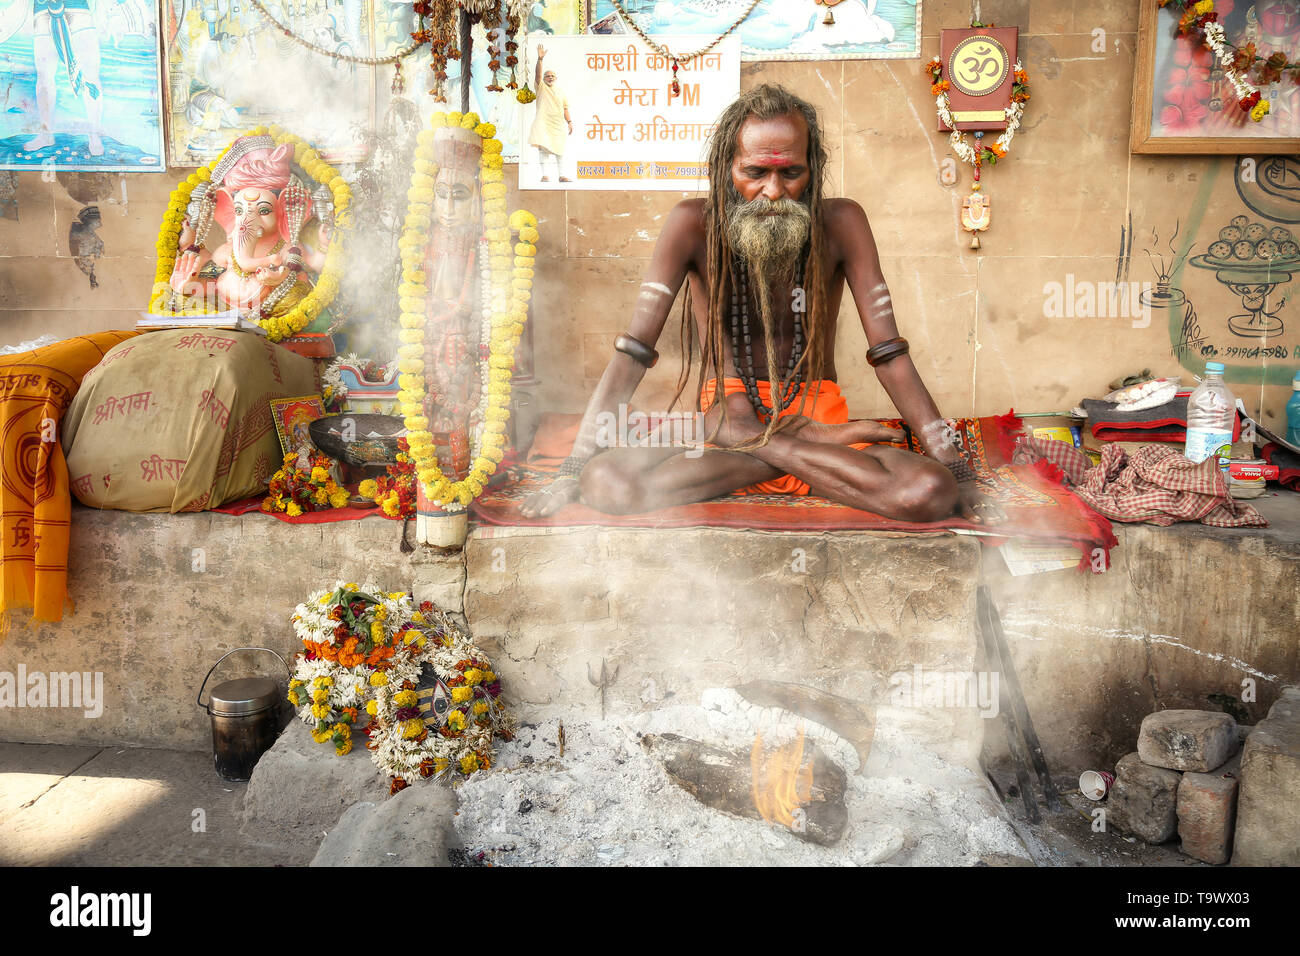 Sadhu baba at Varanasi sitting in meditation posture with holy fire burning at the Ganges river ghat - Stock Image